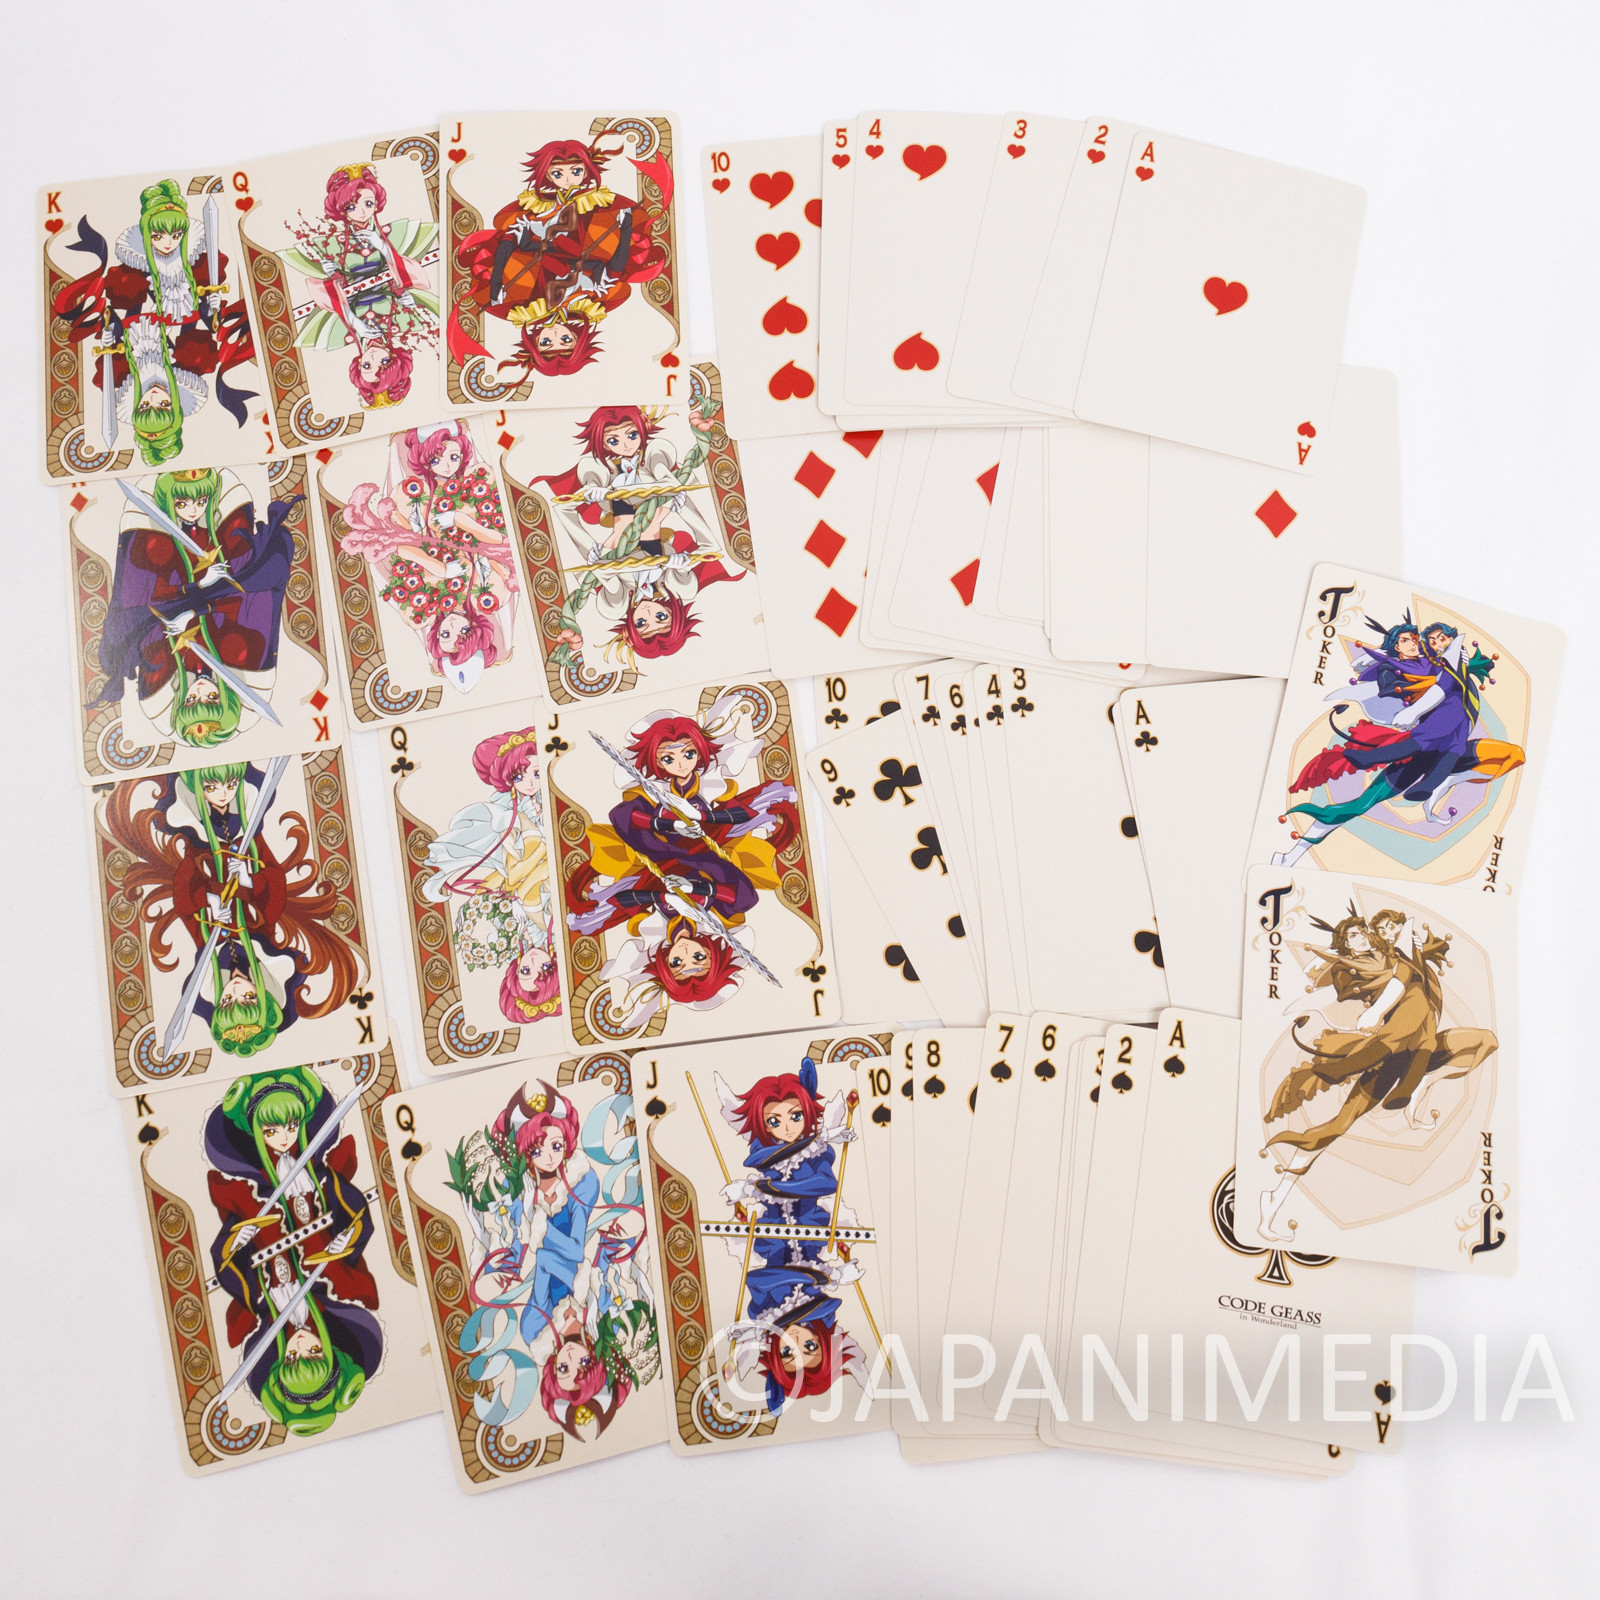 Code Geass in Wonderland Trump Playing Cards A JAPAN ANIME